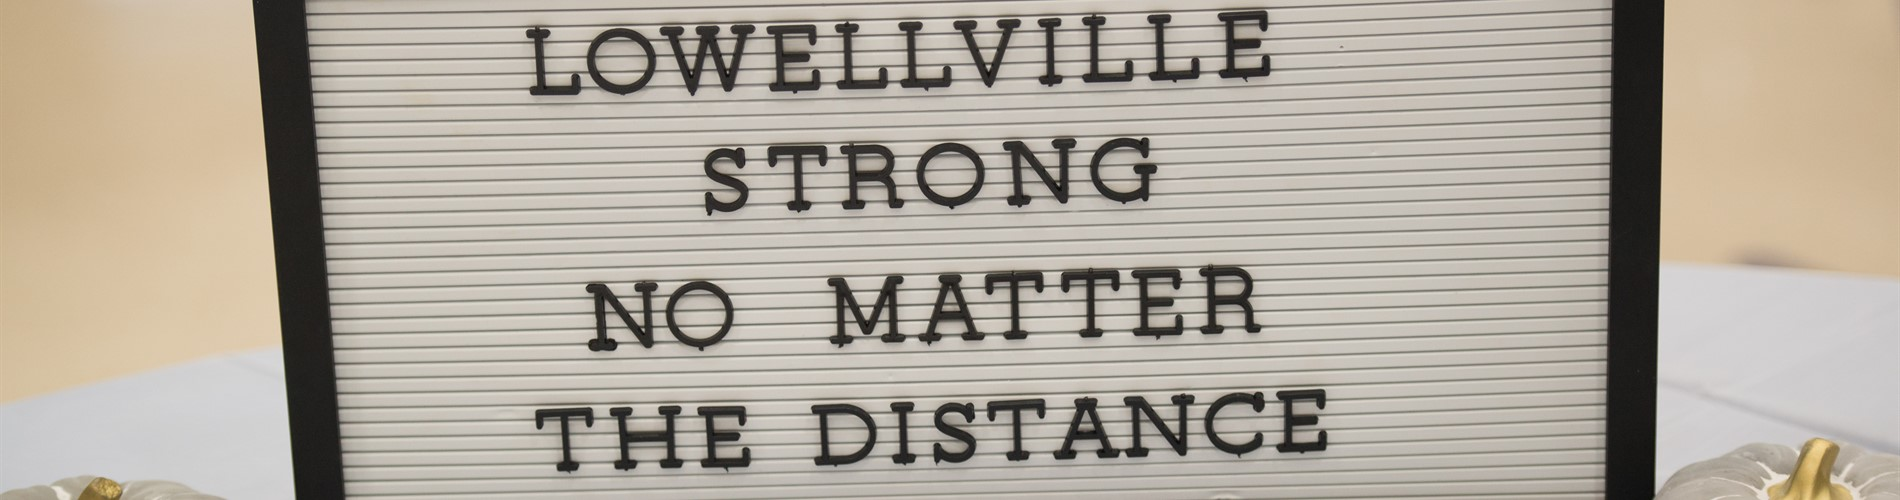 Lowellville Strong